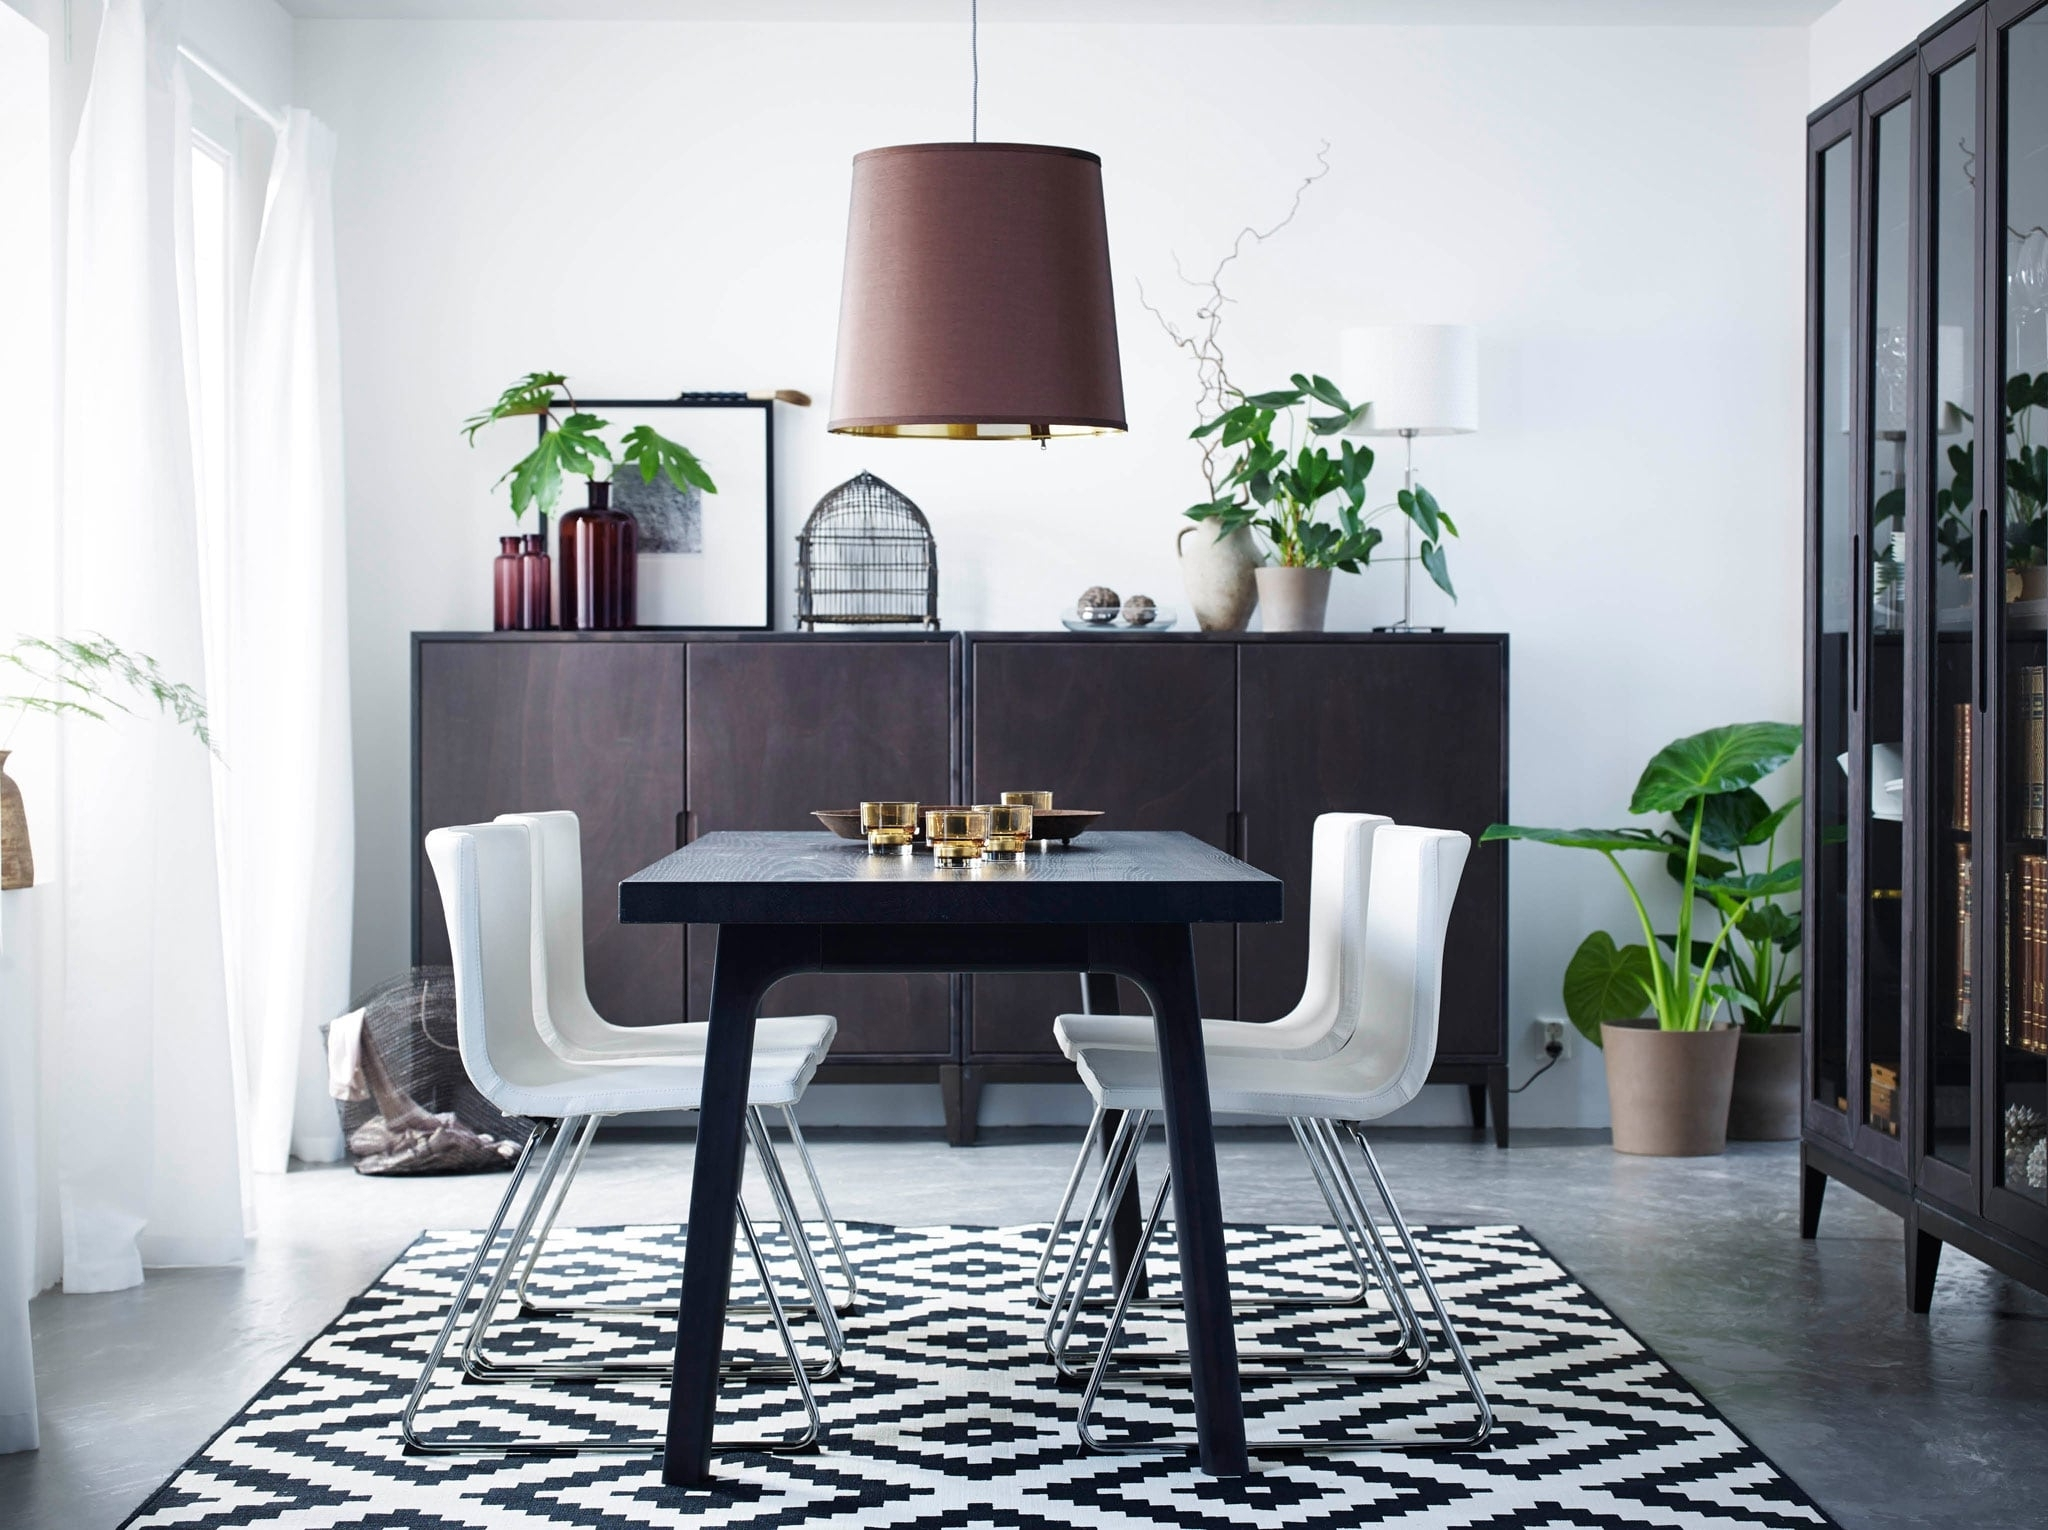 Ikea Round Glass Top Dining Tables within Well-known Dining Room Furniture & Ideas